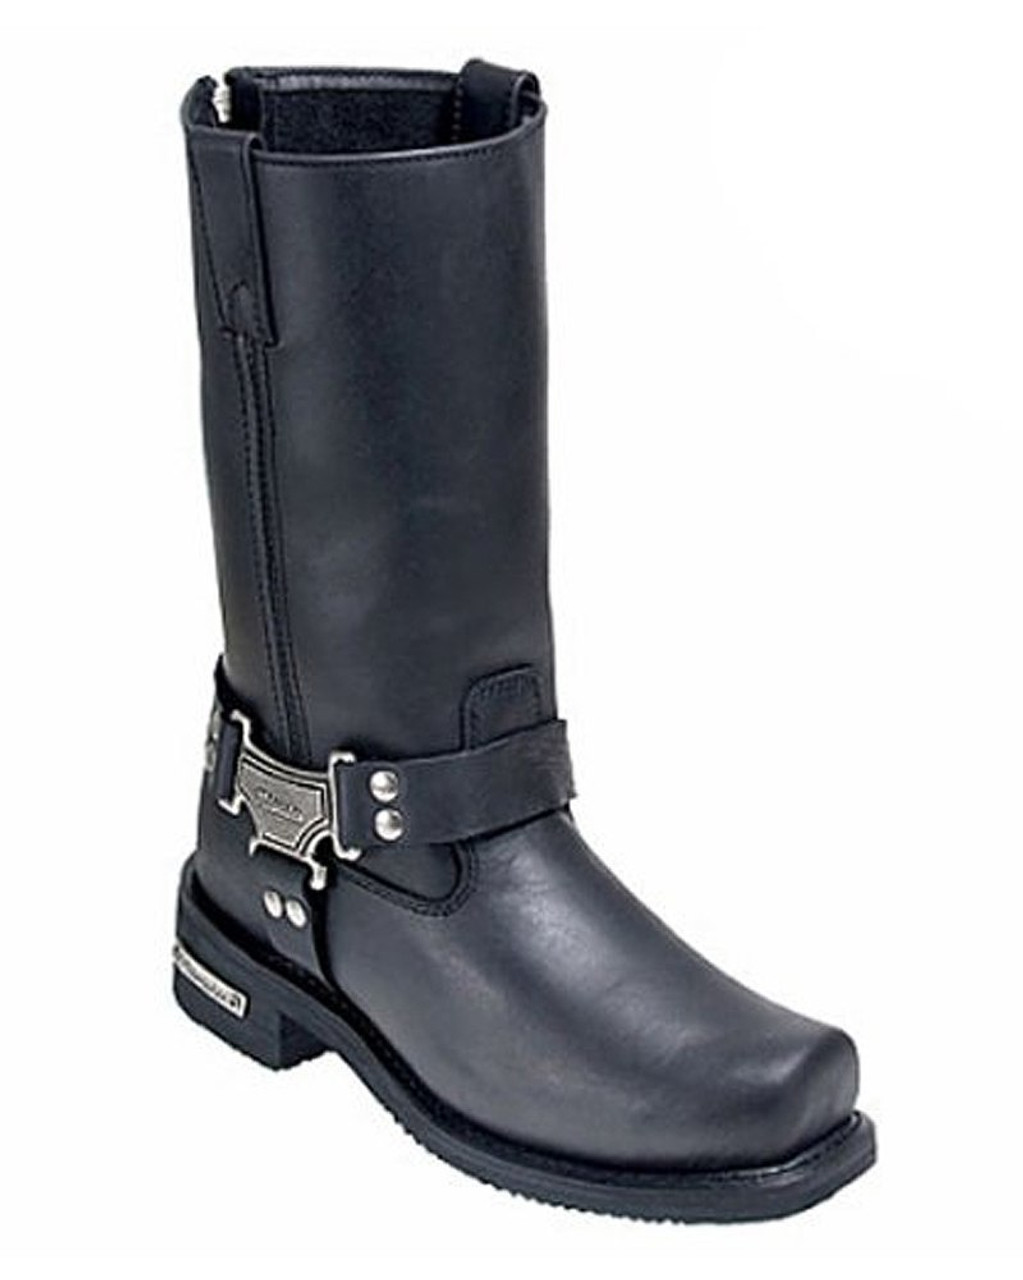 Milwaukee Mens Classic Harness Motorcycle Boots Black, Size 10.5